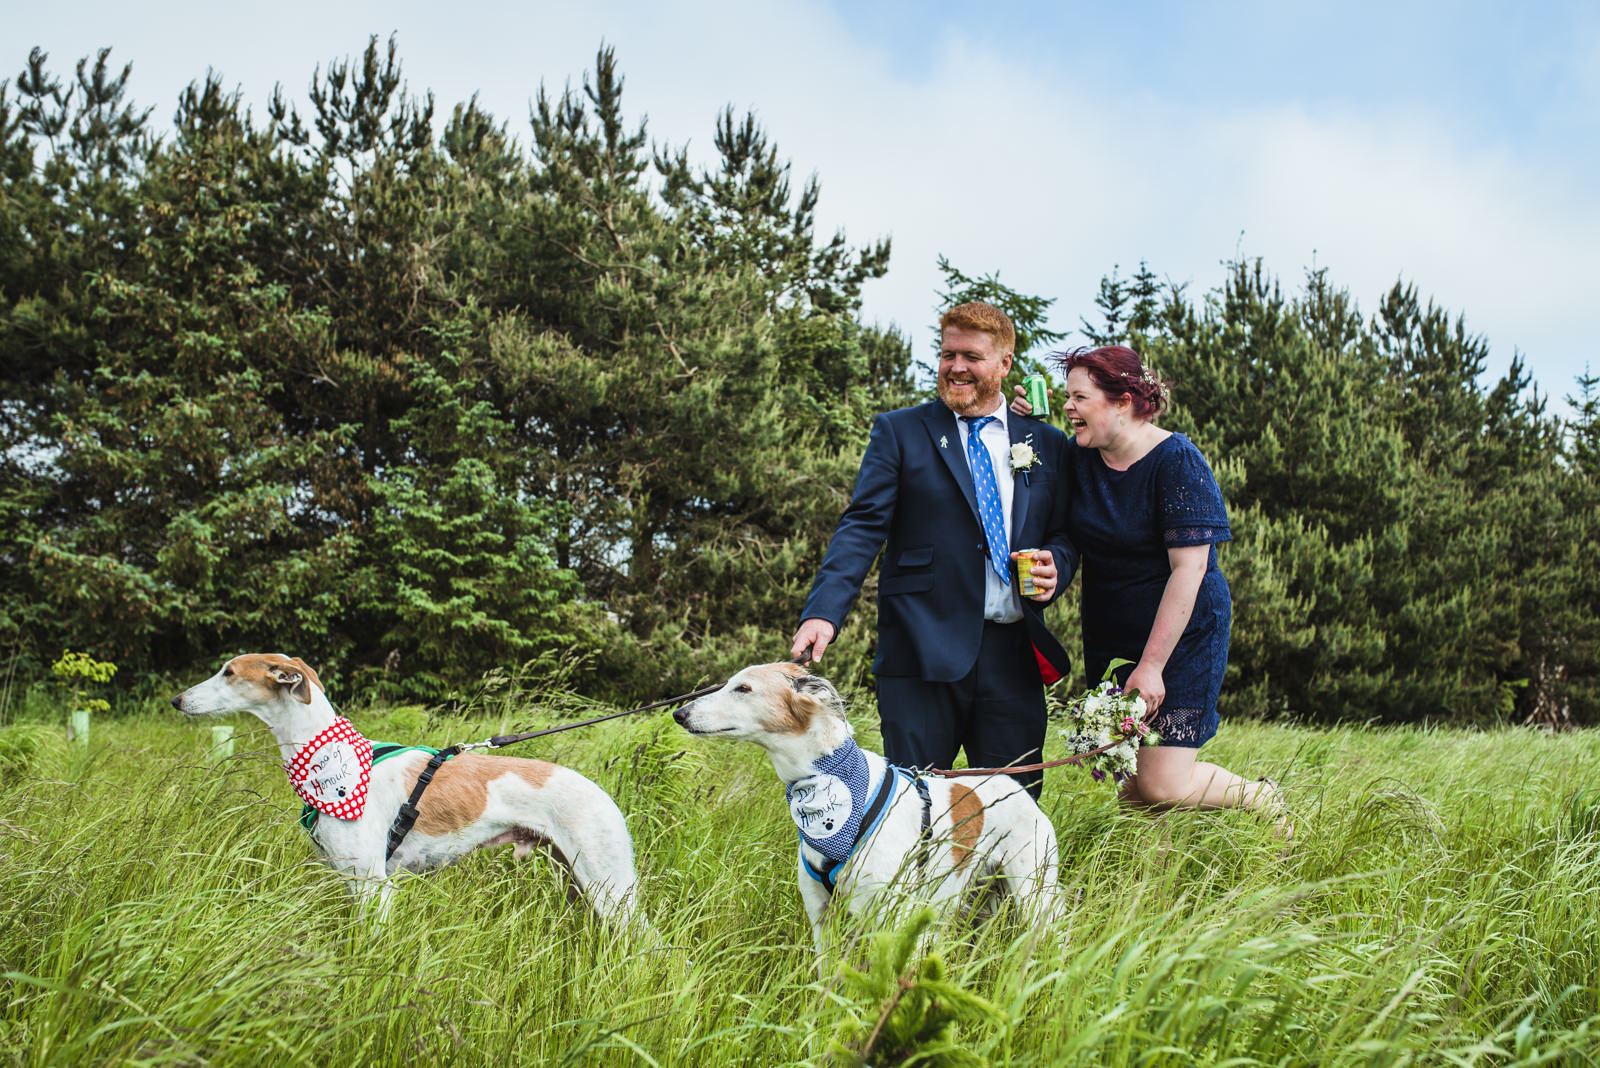 Yorkshire Farm wedding